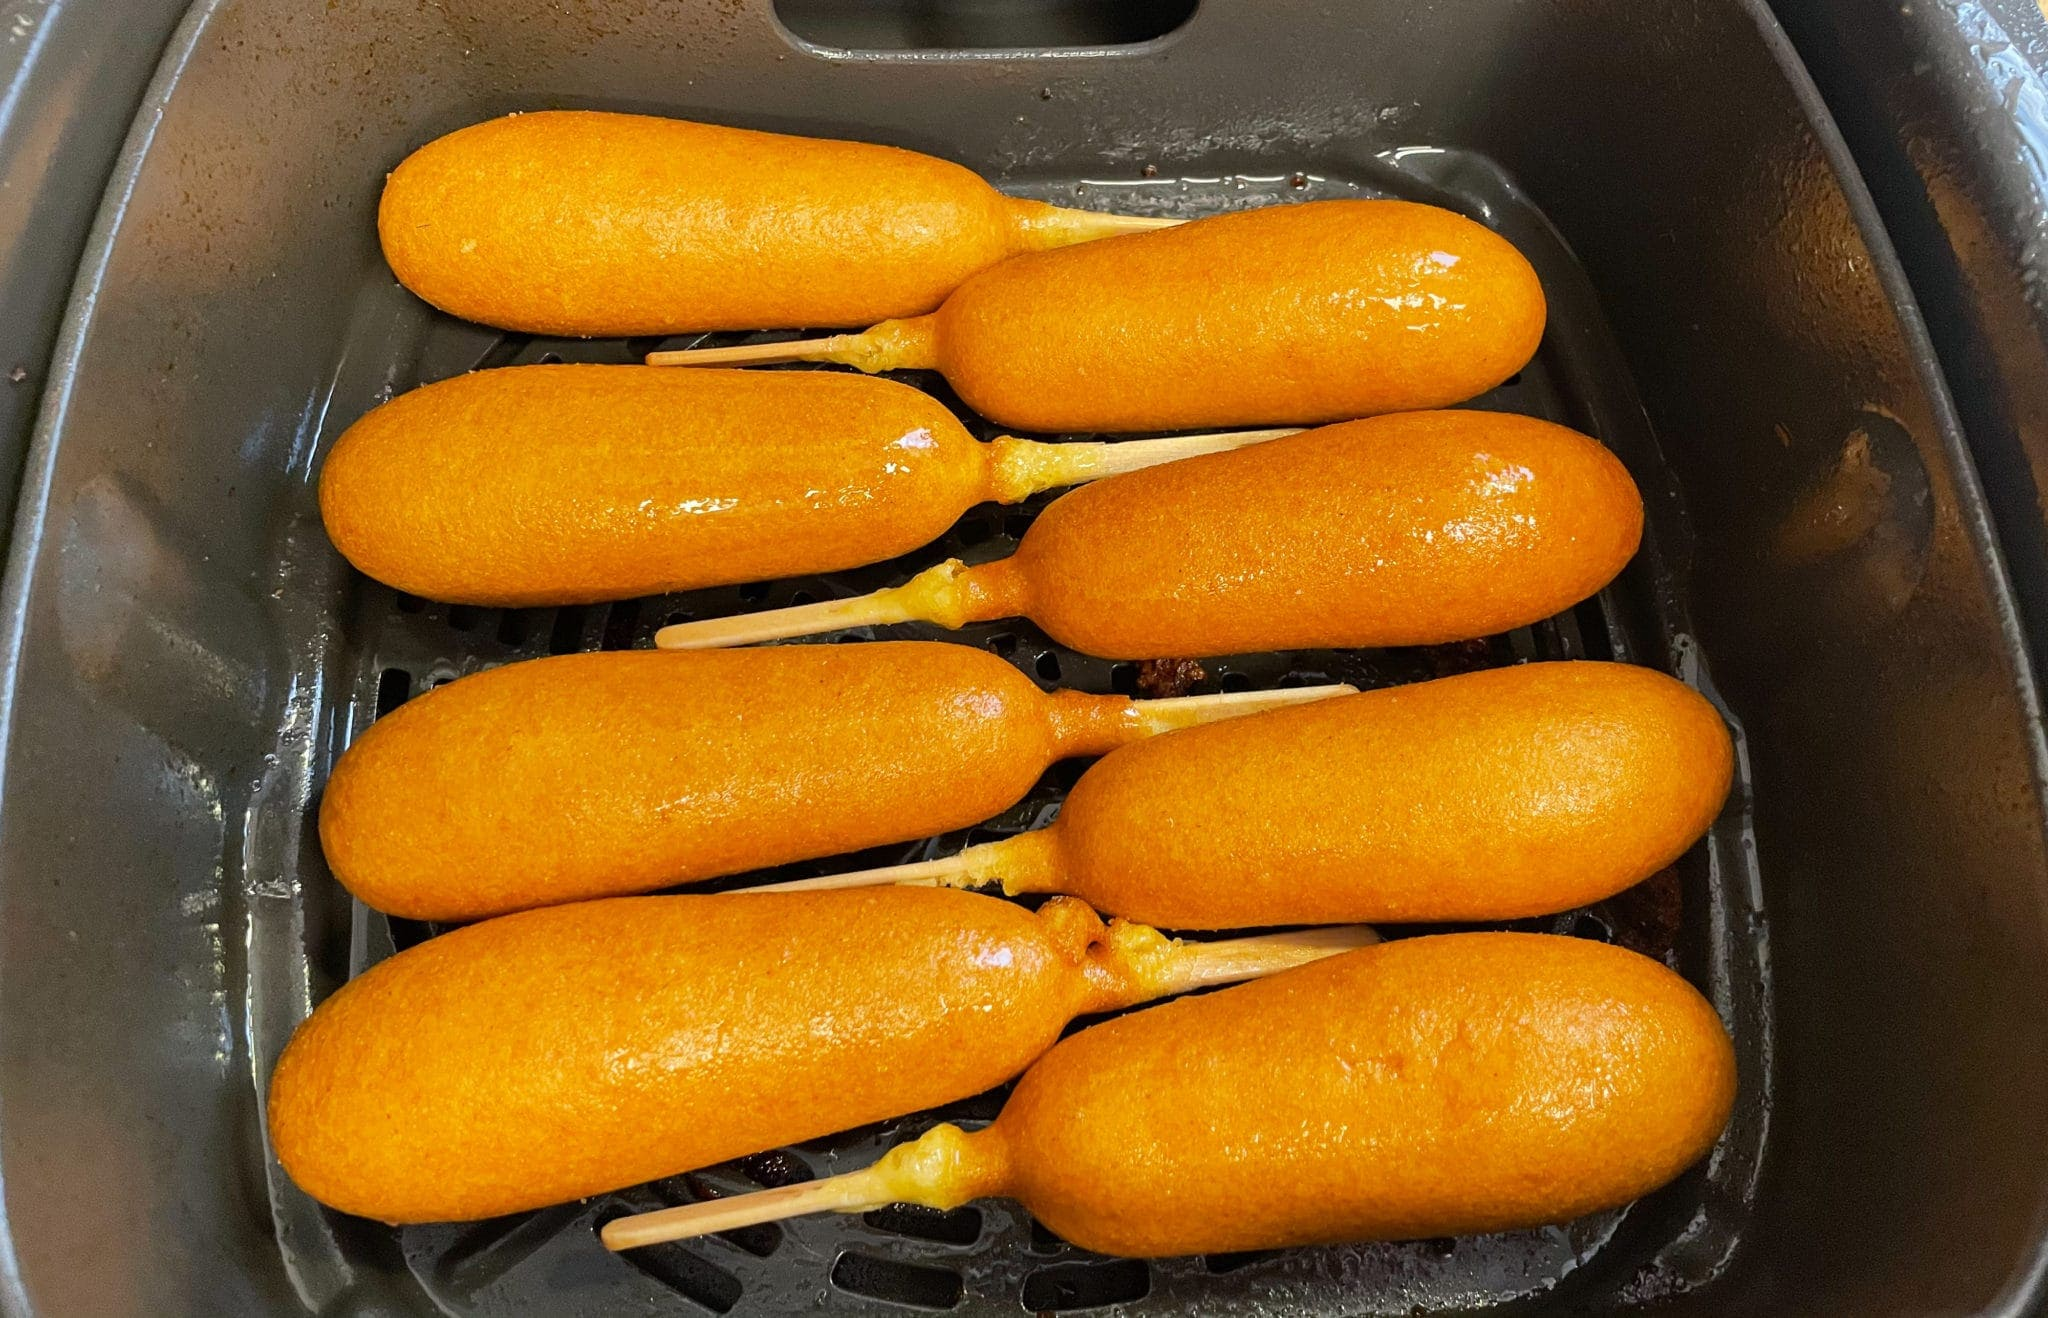 corn dogs in the air fryer